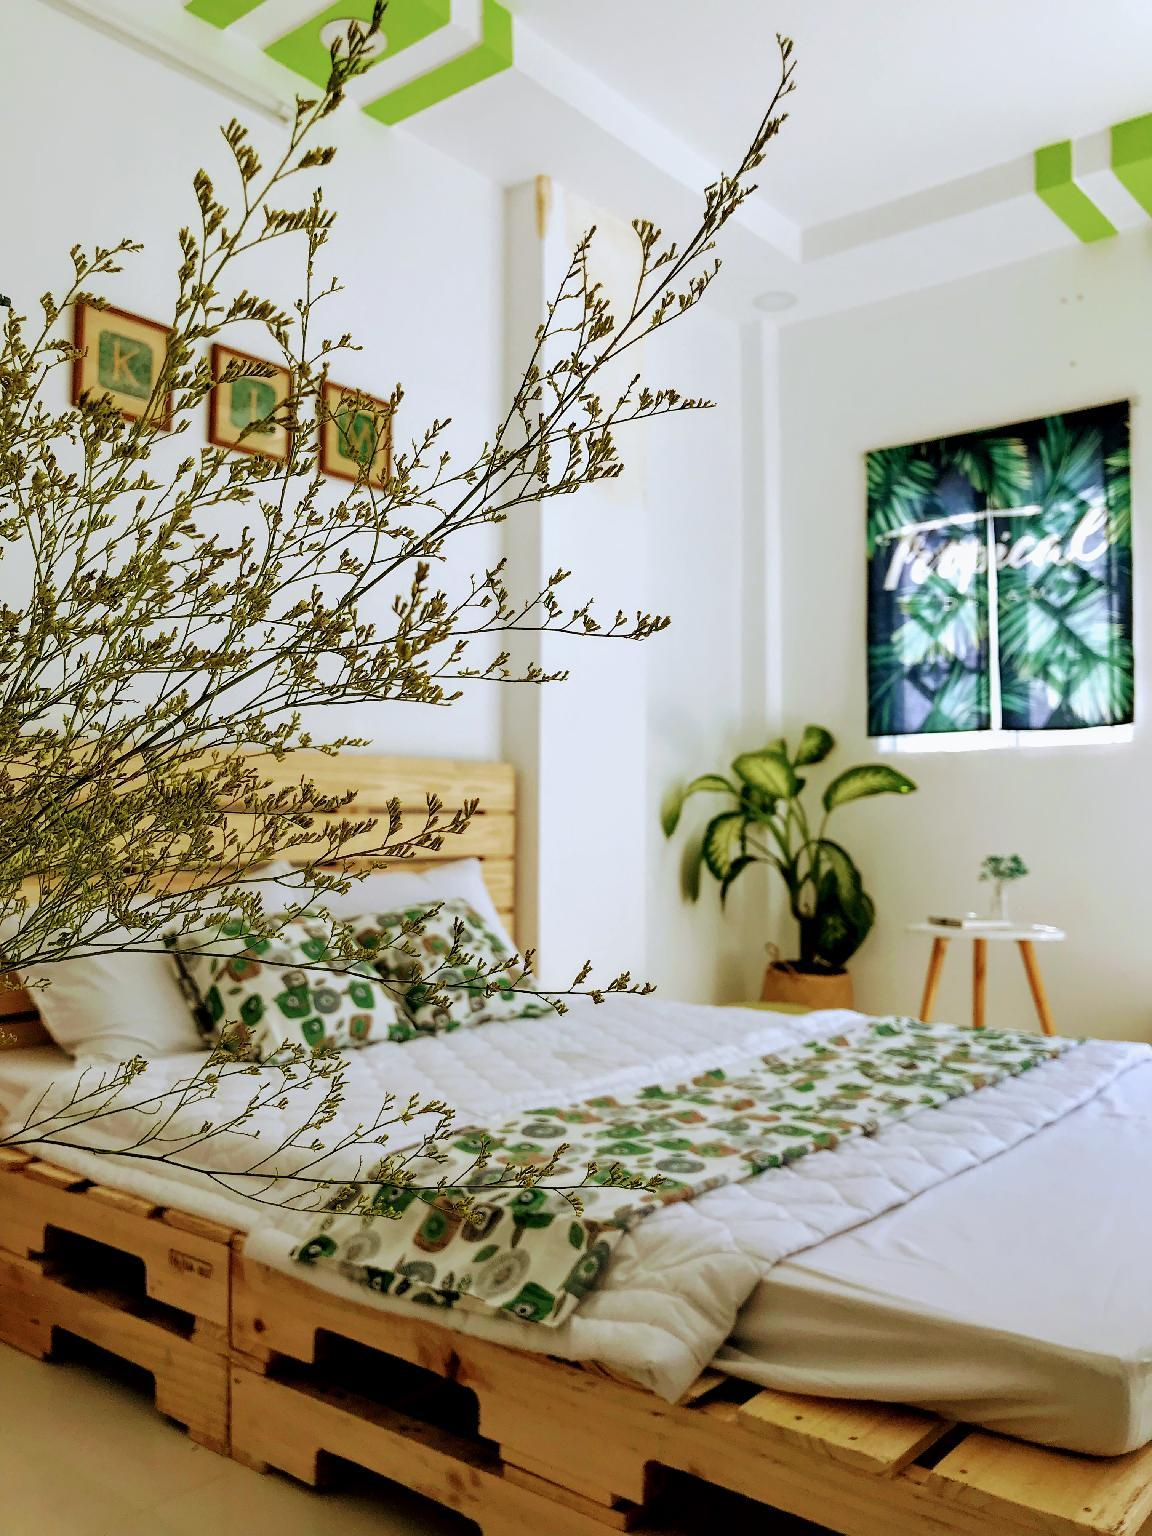 Eco Friendly Room In Heart Of HCMC